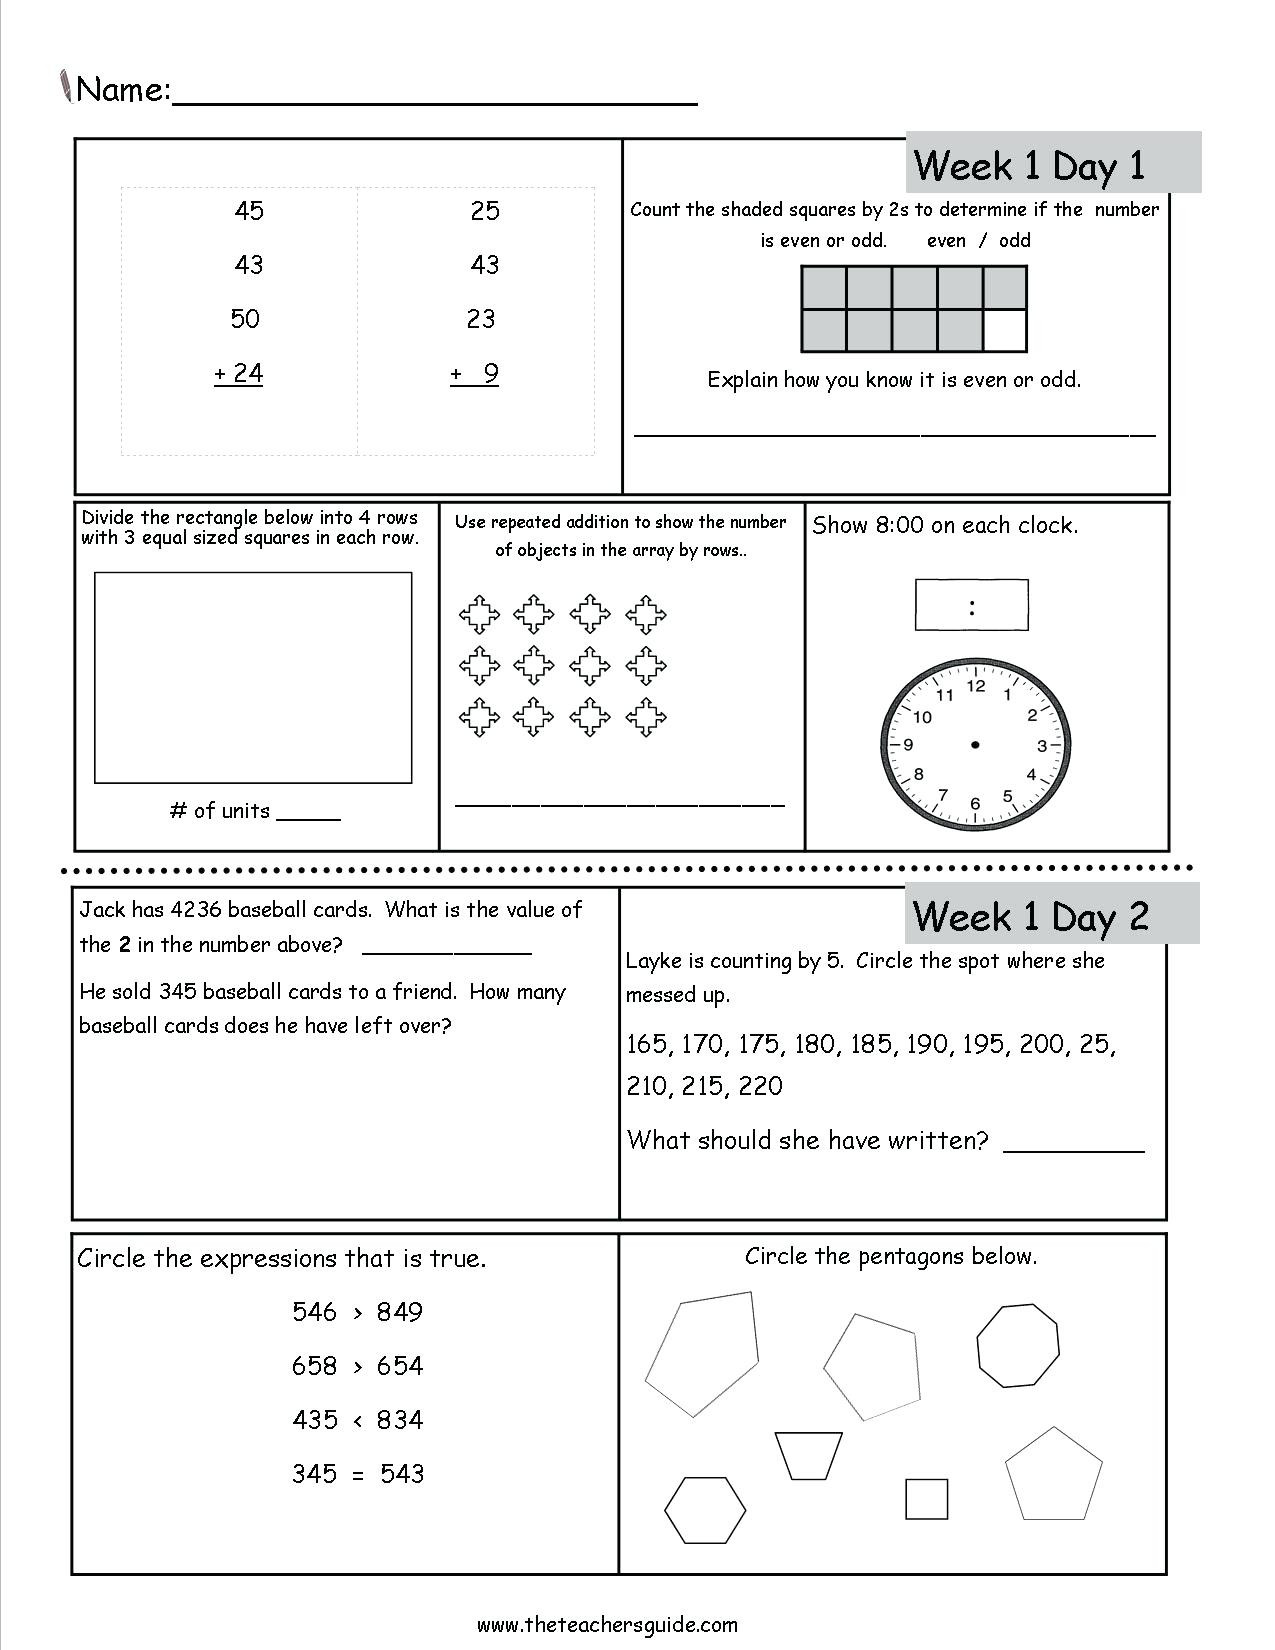 6th Grade Geometry Worksheets 6th Grade Math Worksheets Geometry